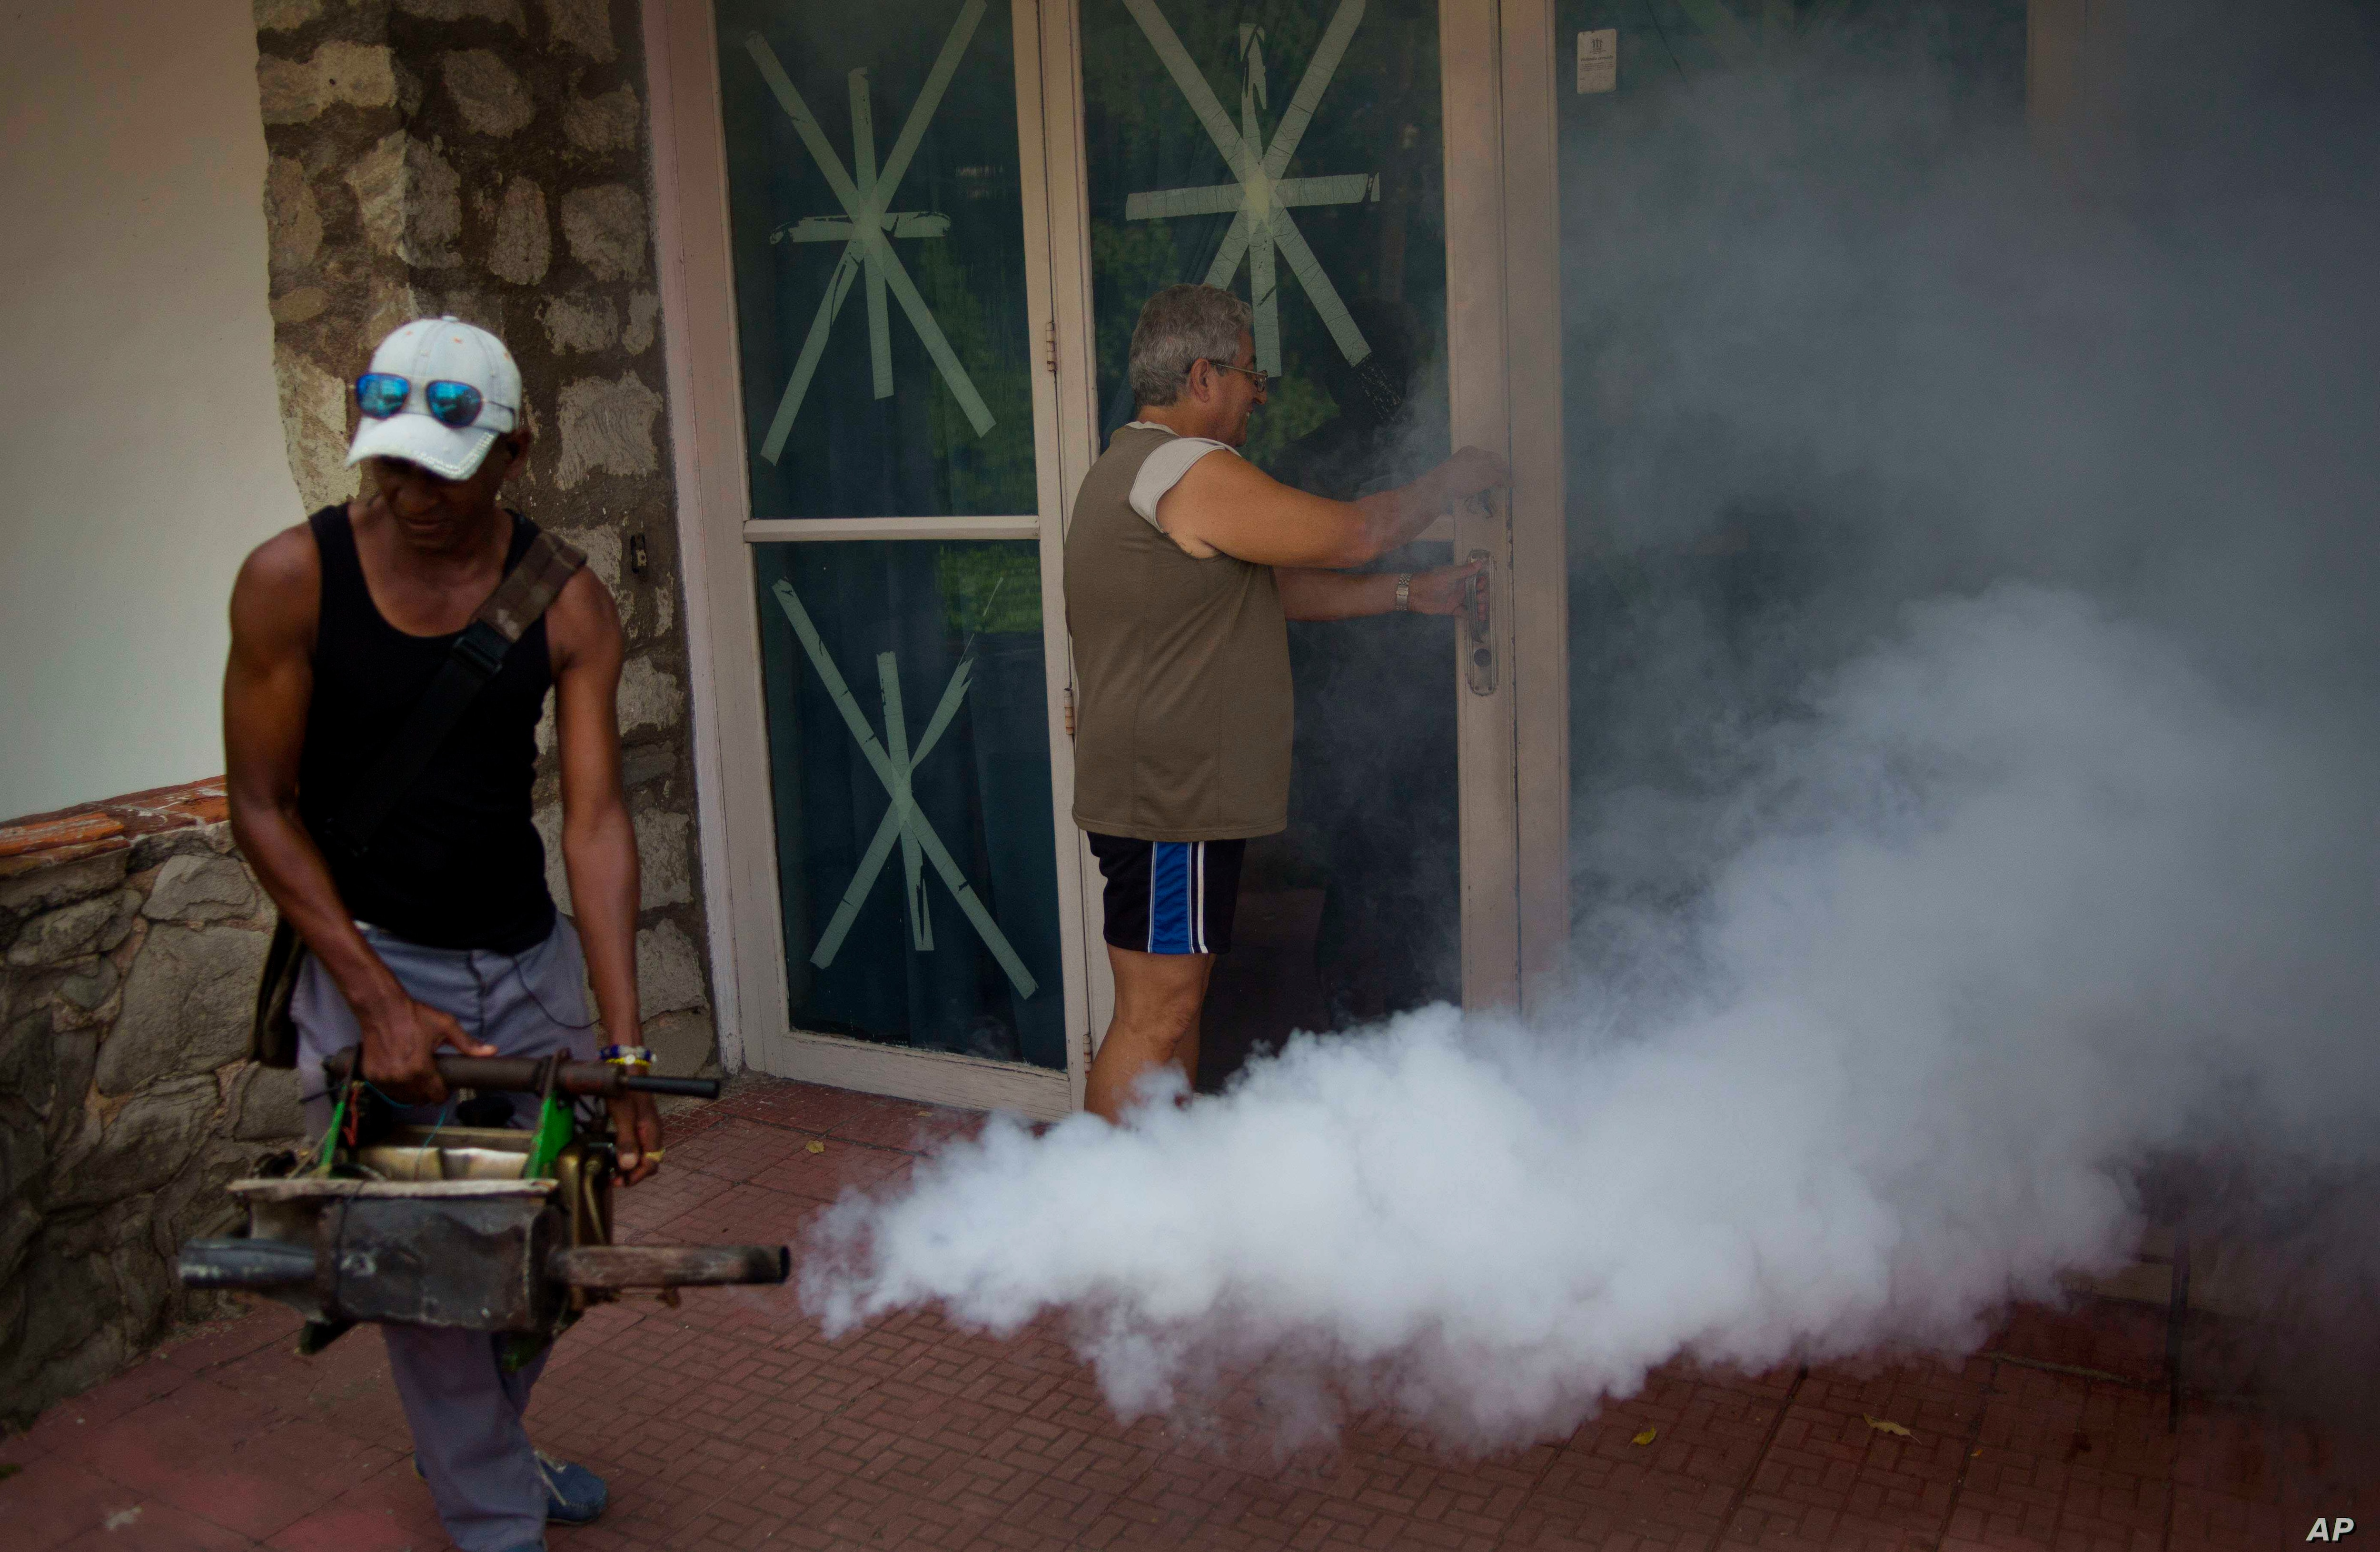 FILE - A government fumigator sprays a home for mosquitos in Havana, Cuba, Aug. 26, 2016.